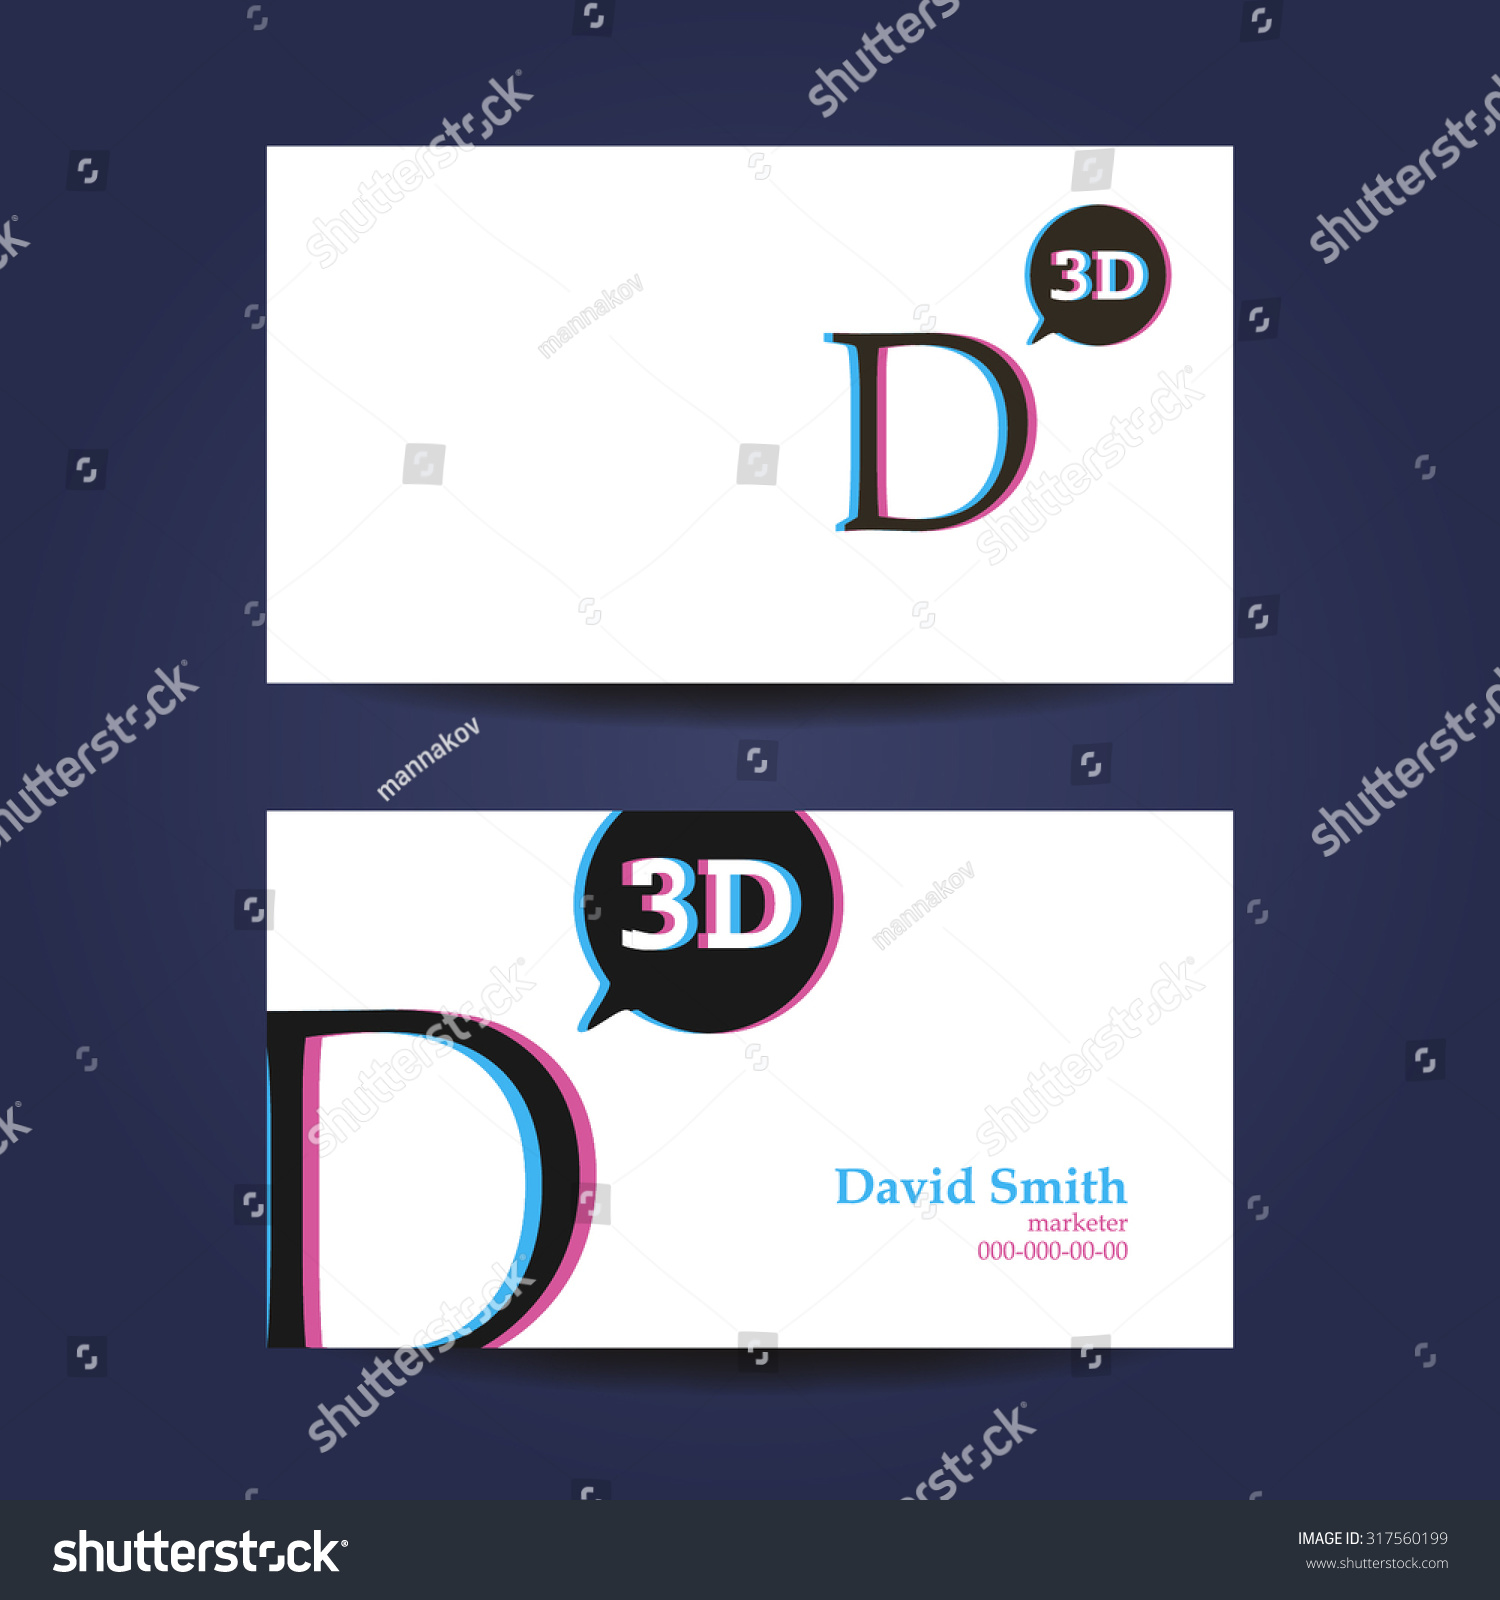 Business card template letter d 3d stock vector 317560199 shutterstock business card template letter d 3d fbccfo Choice Image